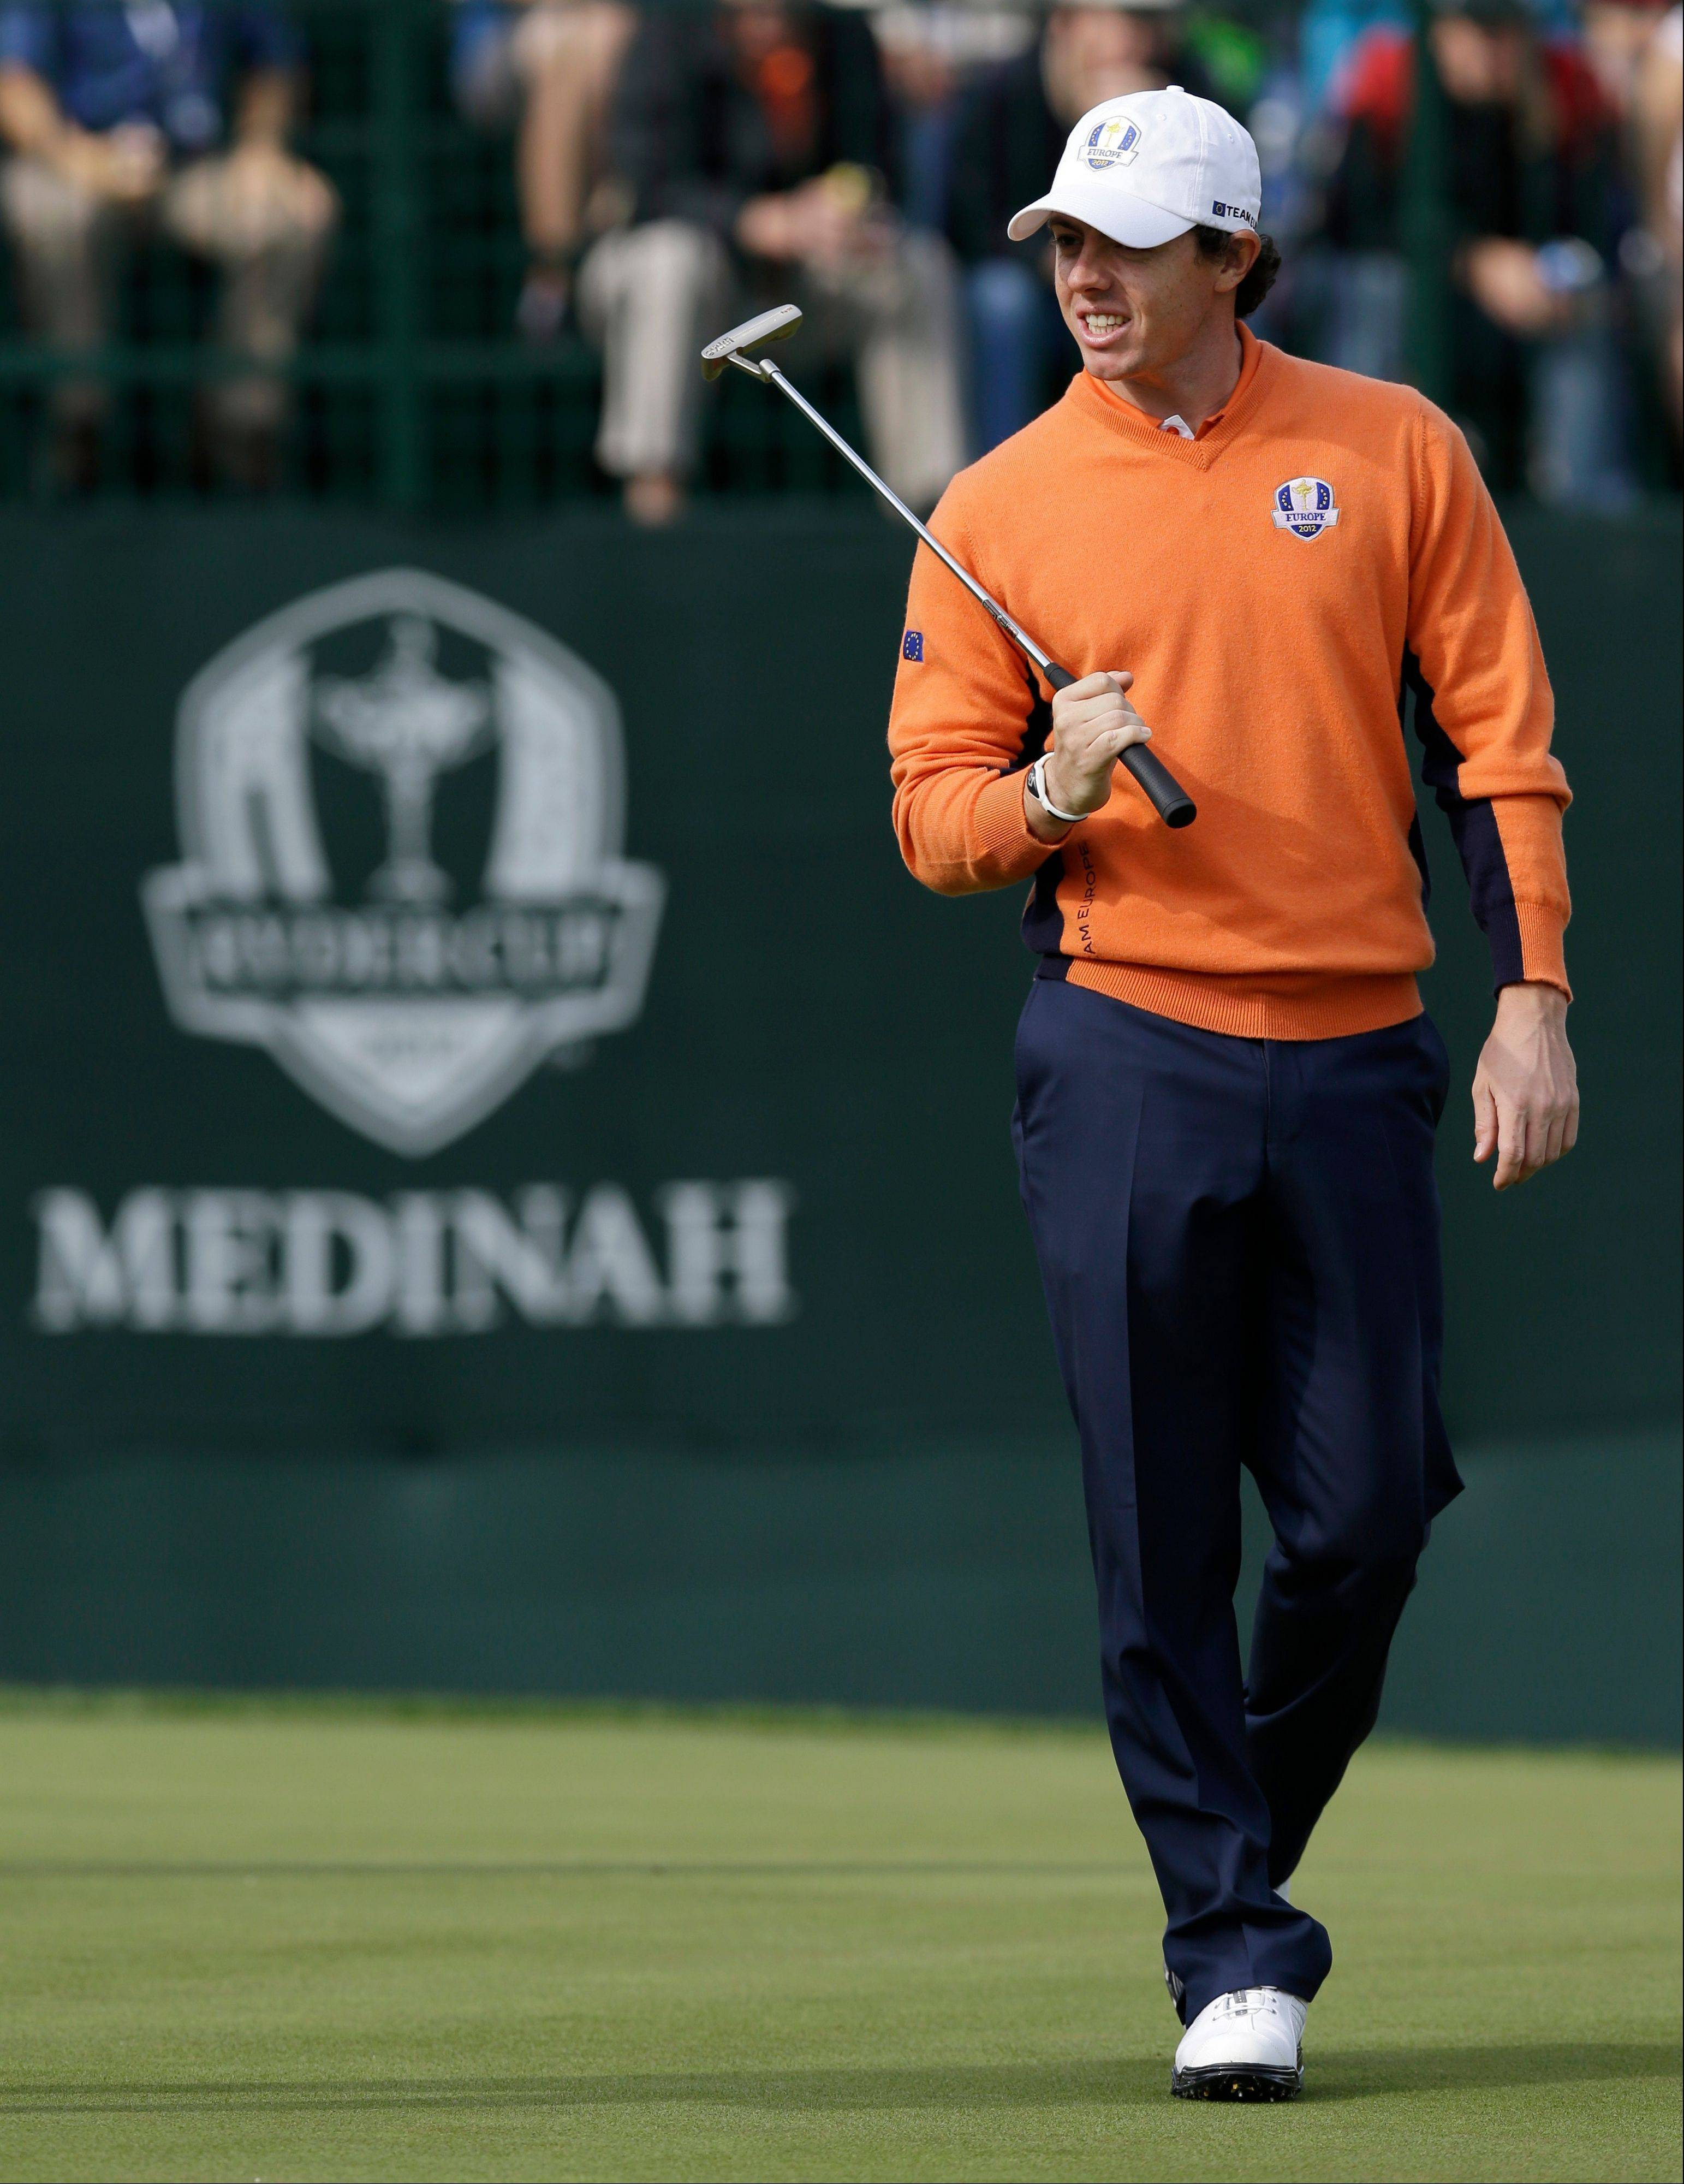 The European team, led by Rory McIlroy, stormed back in September to win the Ryder Cup at Medinah Country Club. The tournament put Medinah and DuPage County in the world spotlight and both came through with flying colors.